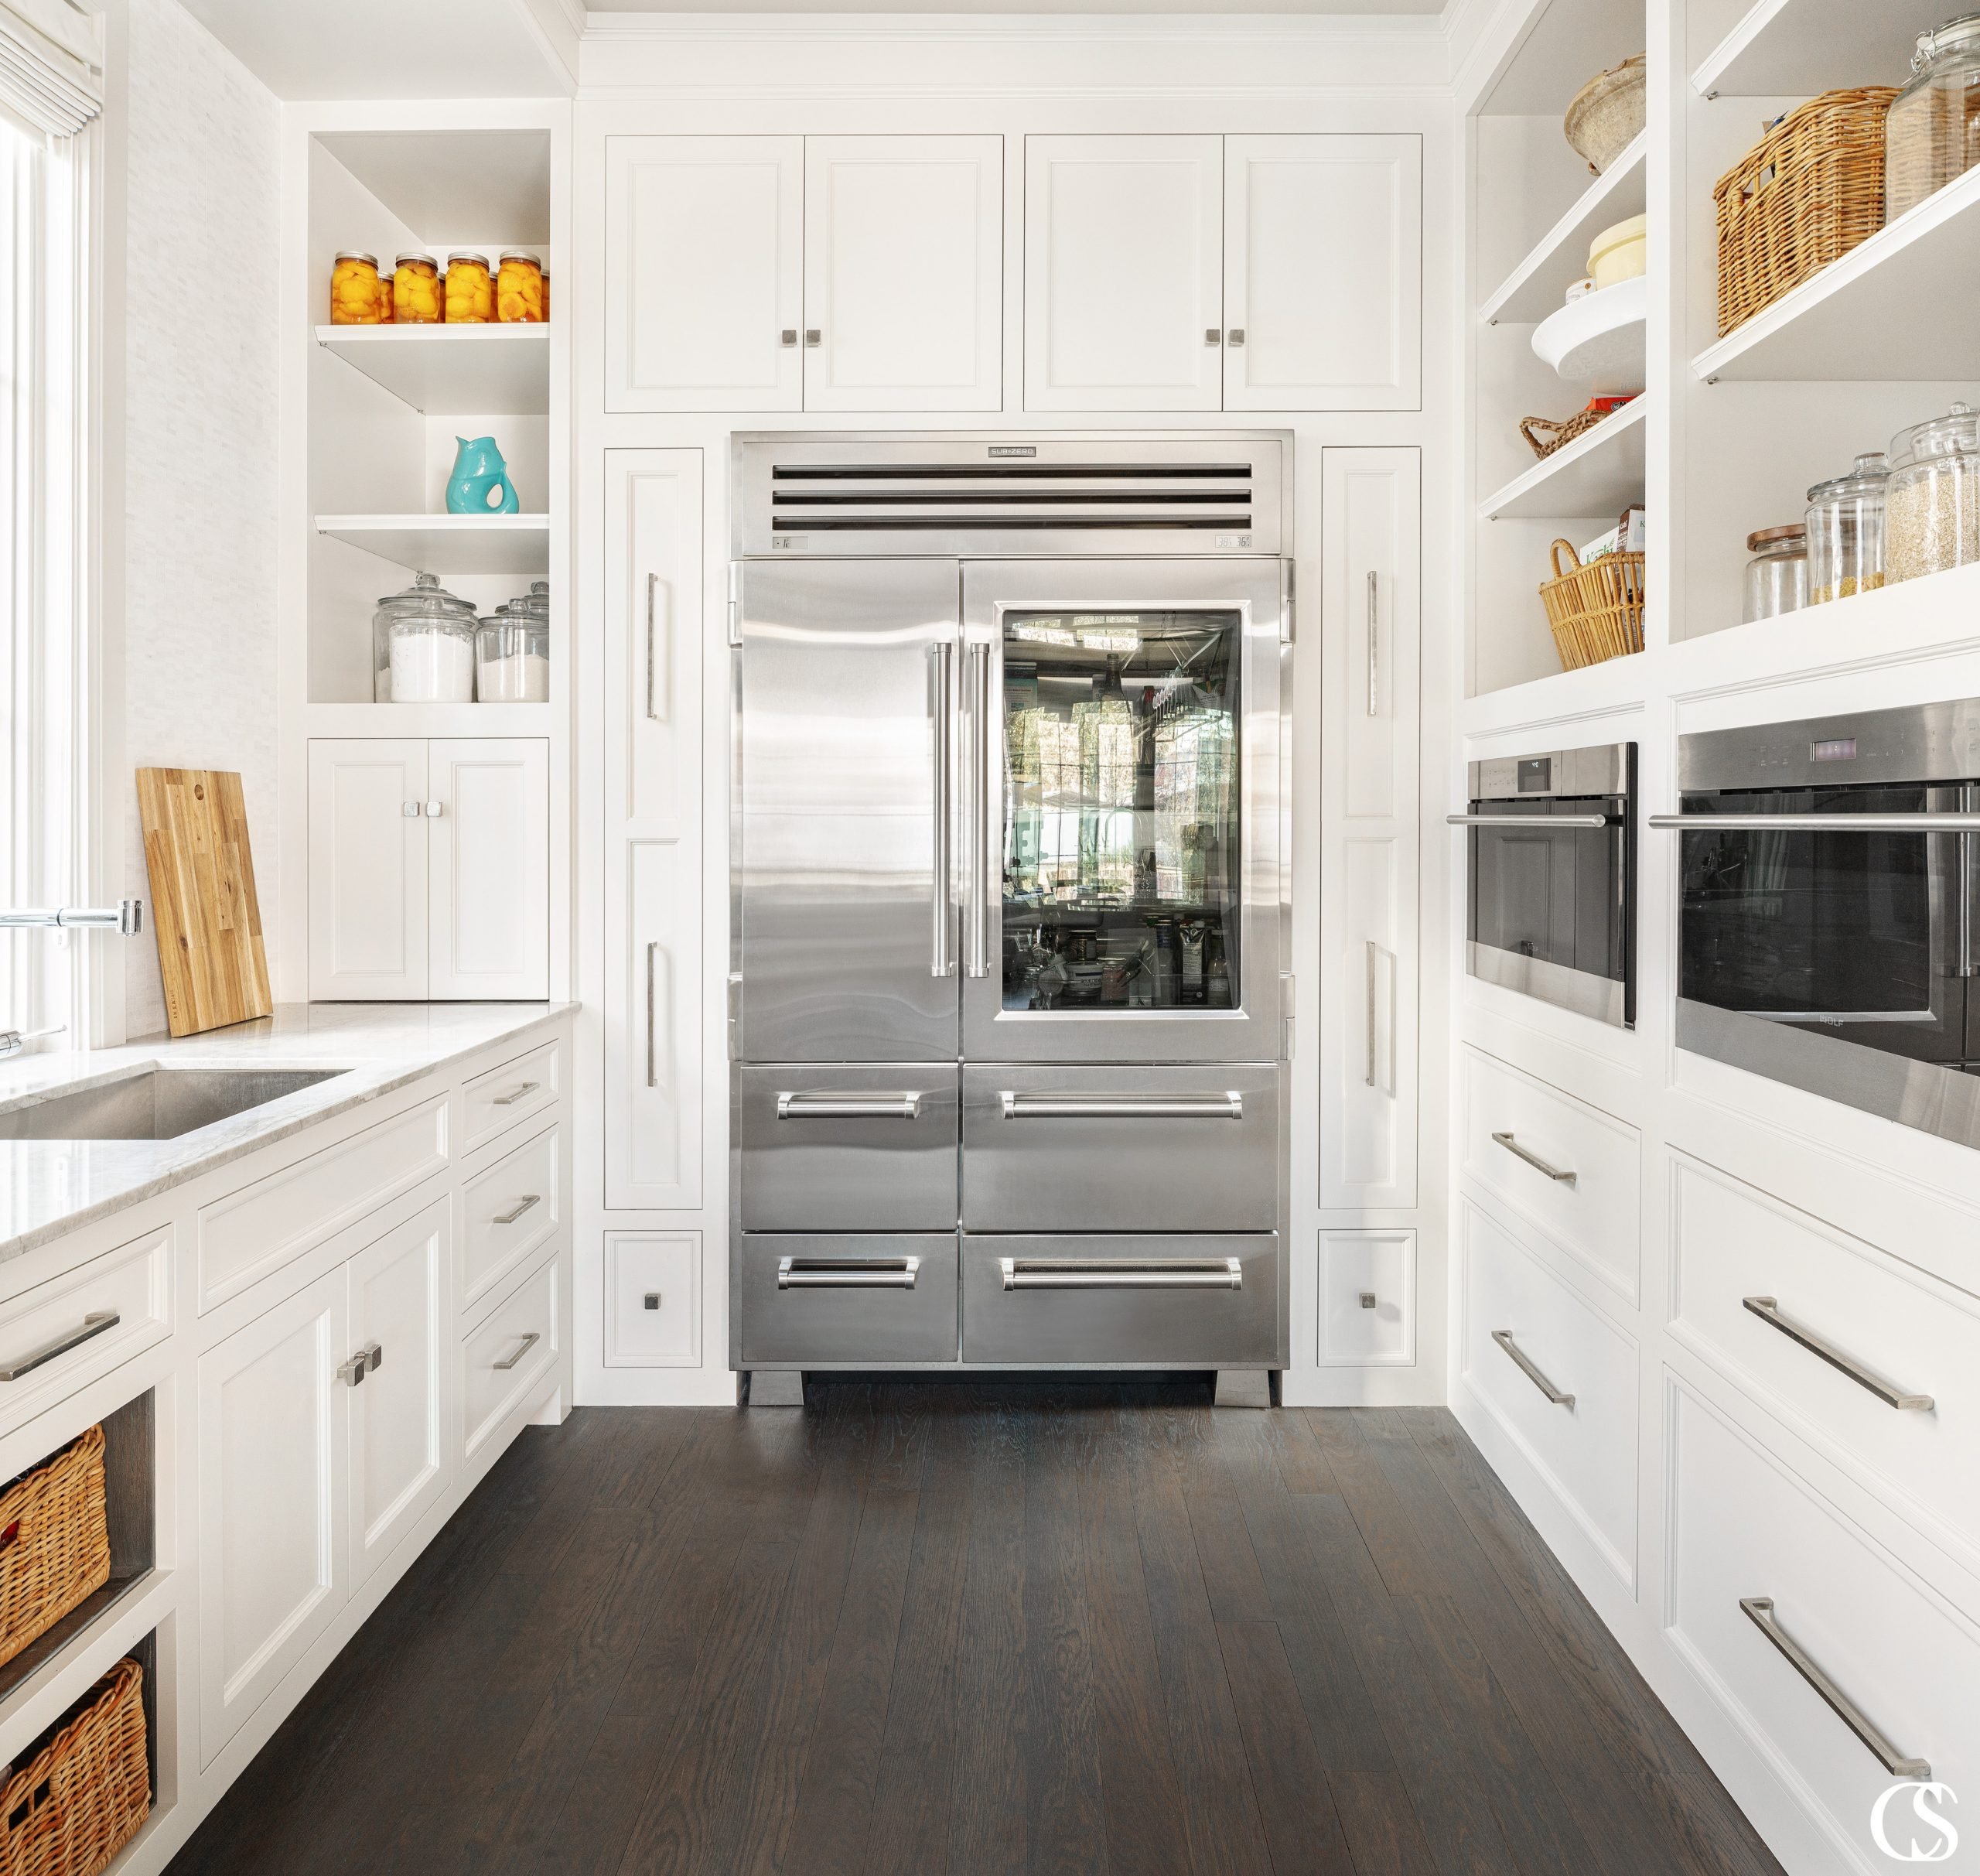 What would you store in the custom kitchen cabinets that surround the refrigerator??